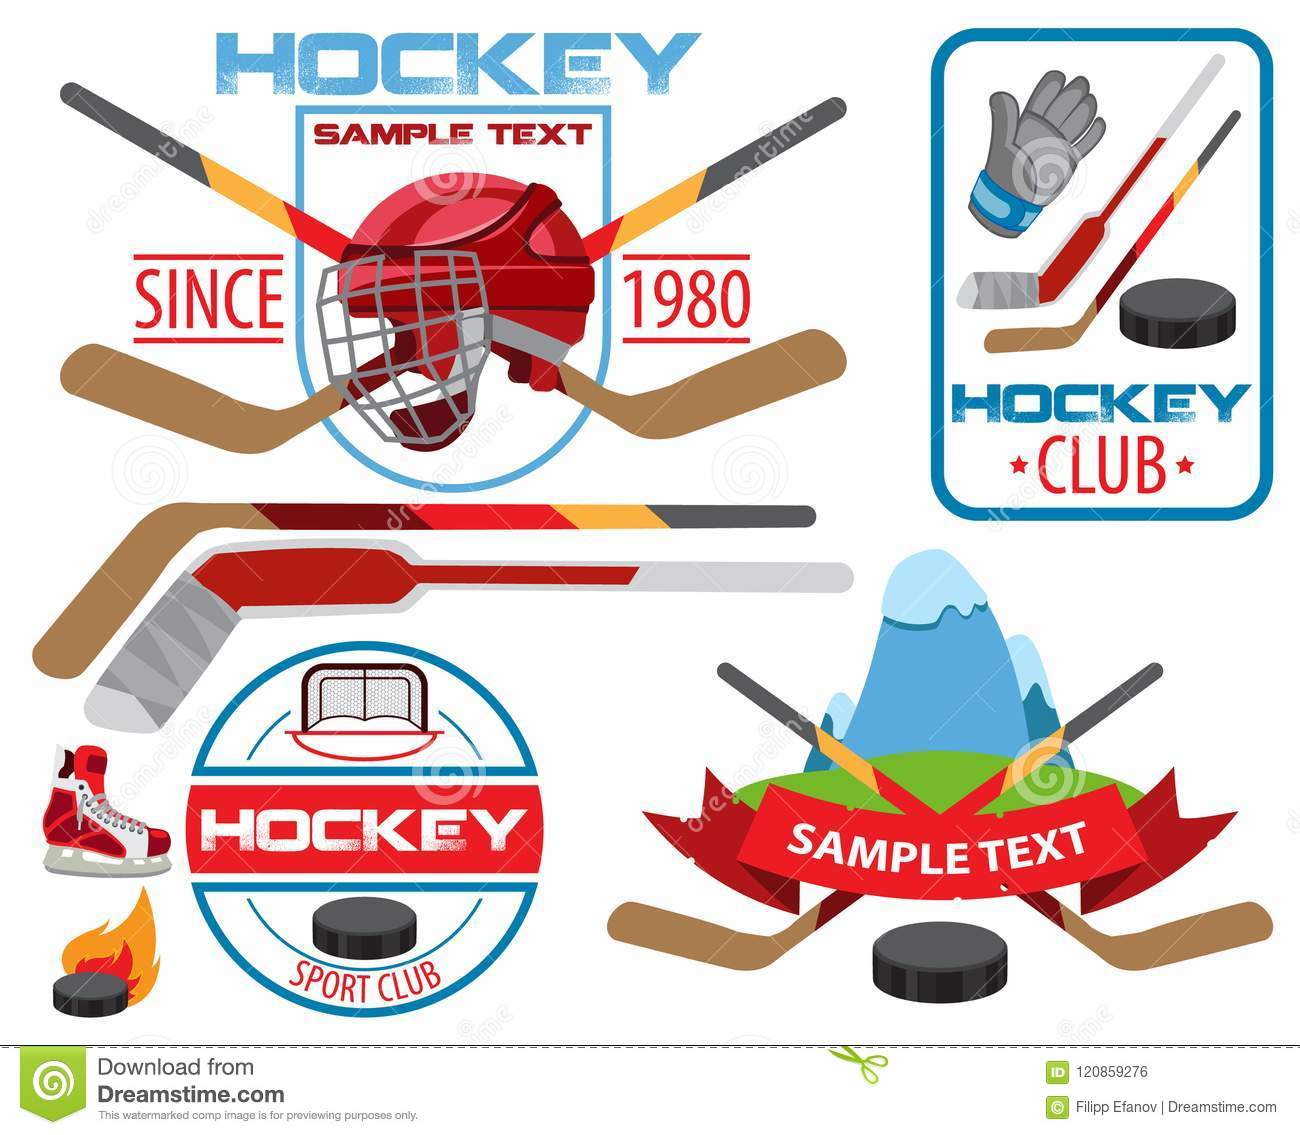 Hockey Logos Ice Hockey Logos Stock Vector Illustration Of Competition 120859276